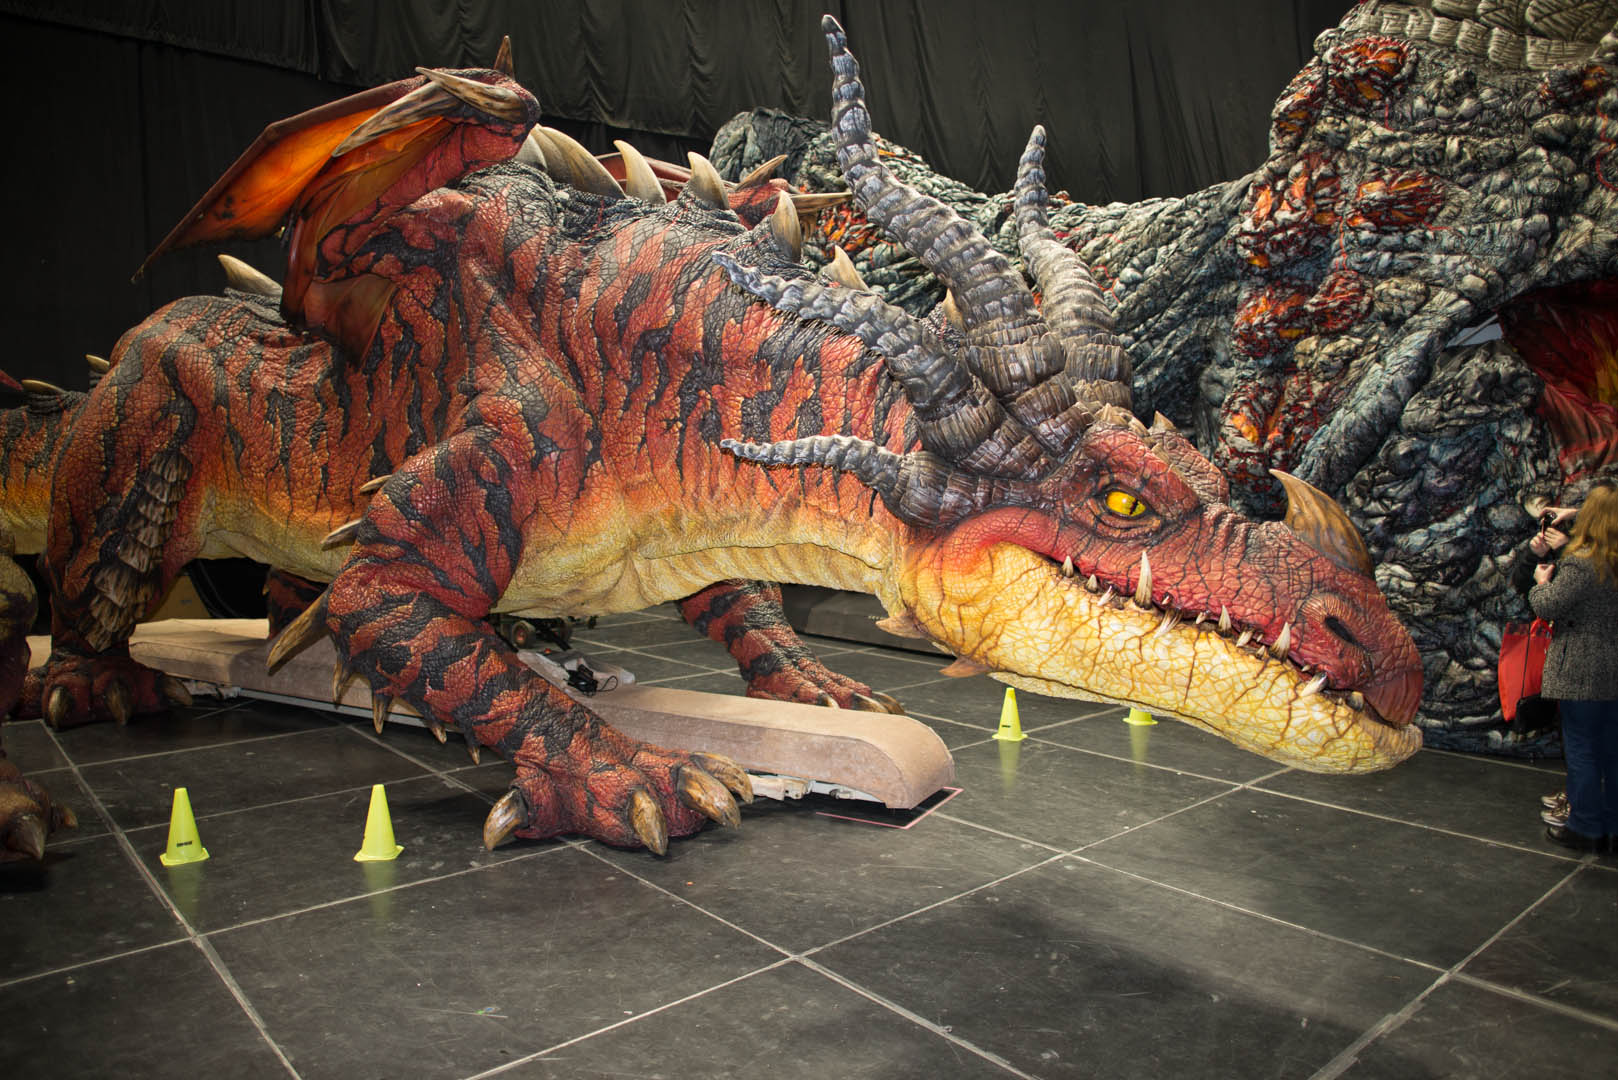 Your dragon live monstrous nightmare monstrous nightmare backstage